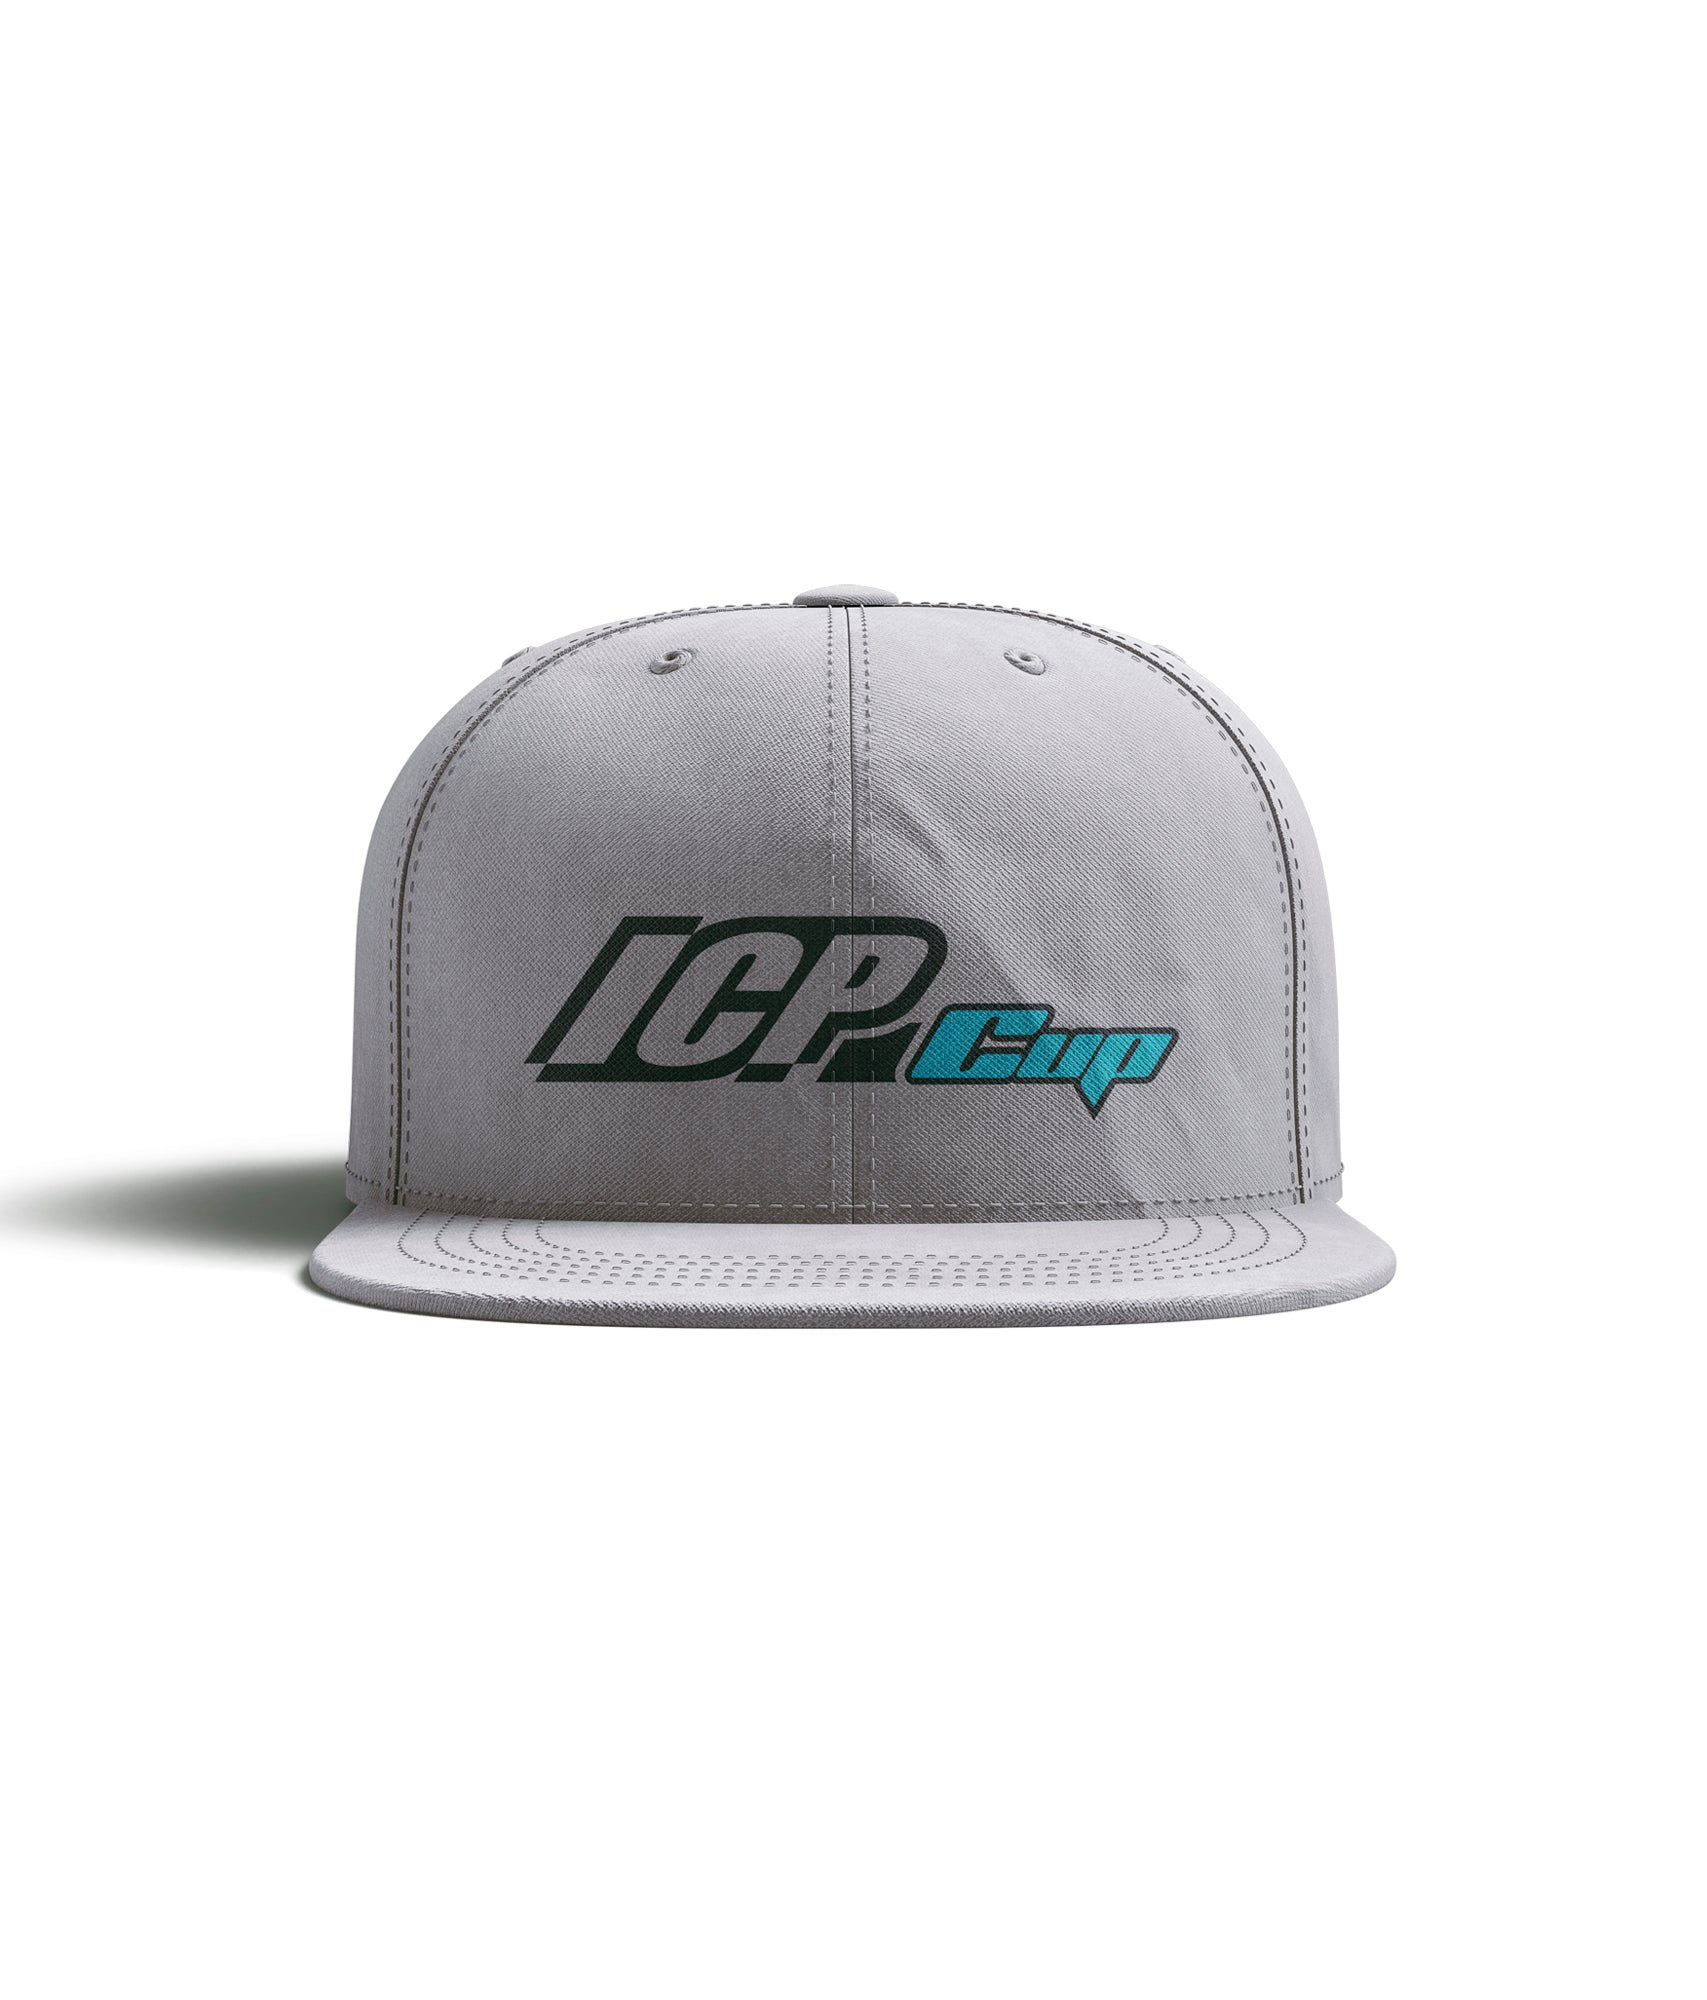 ICP CUP Flatbill Hat